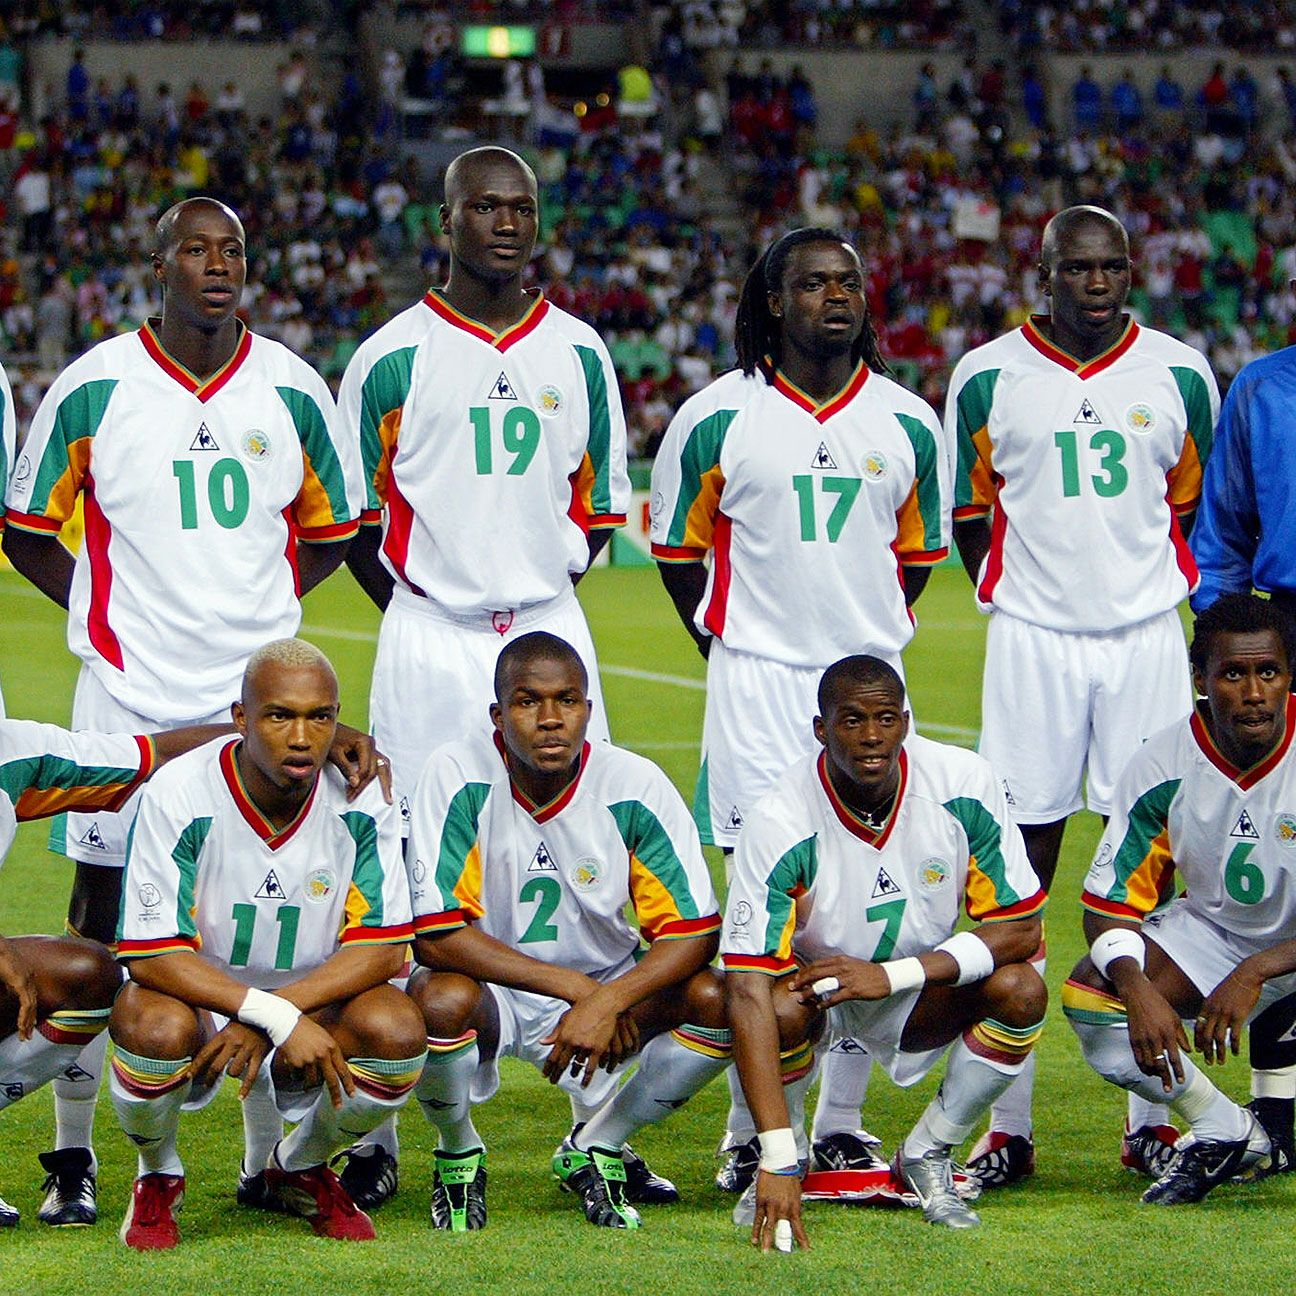 Senegal became the second African team to reach a World Cup quarterfinal in 2002.